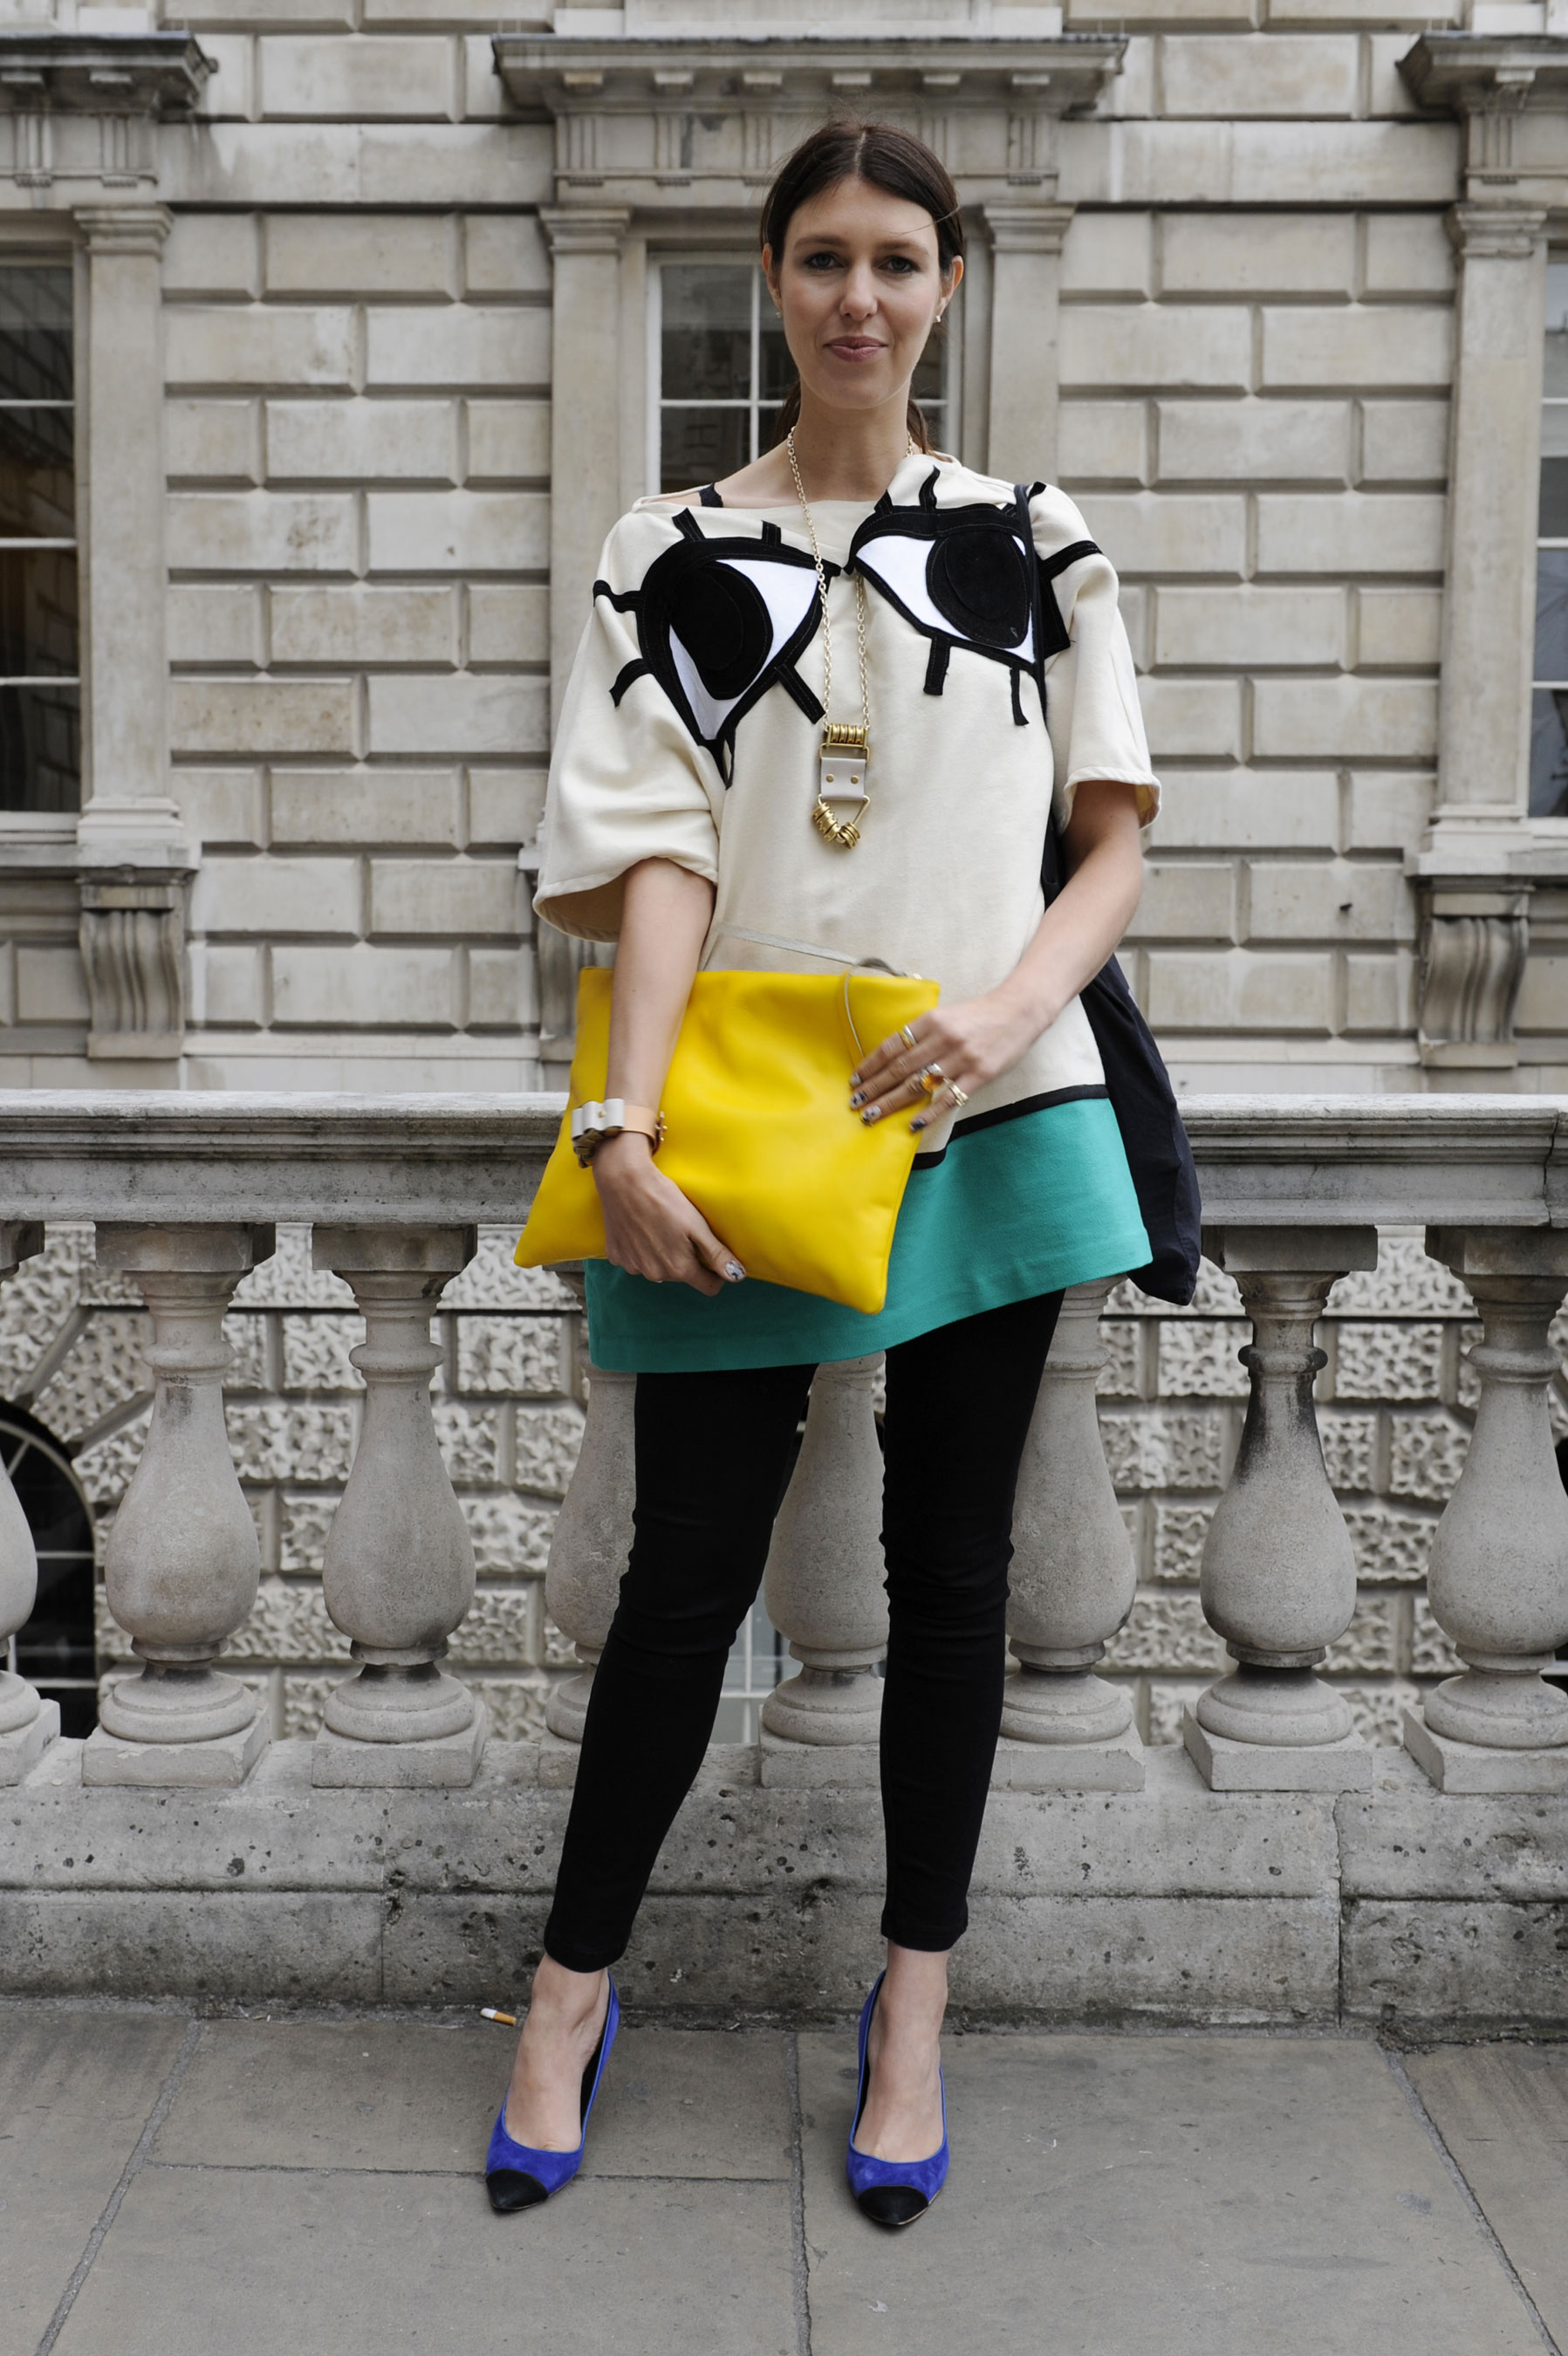 """Nothing says """"statement"""" like an eye-embroidered topper, yellow clutch, and electric blue pumps."""